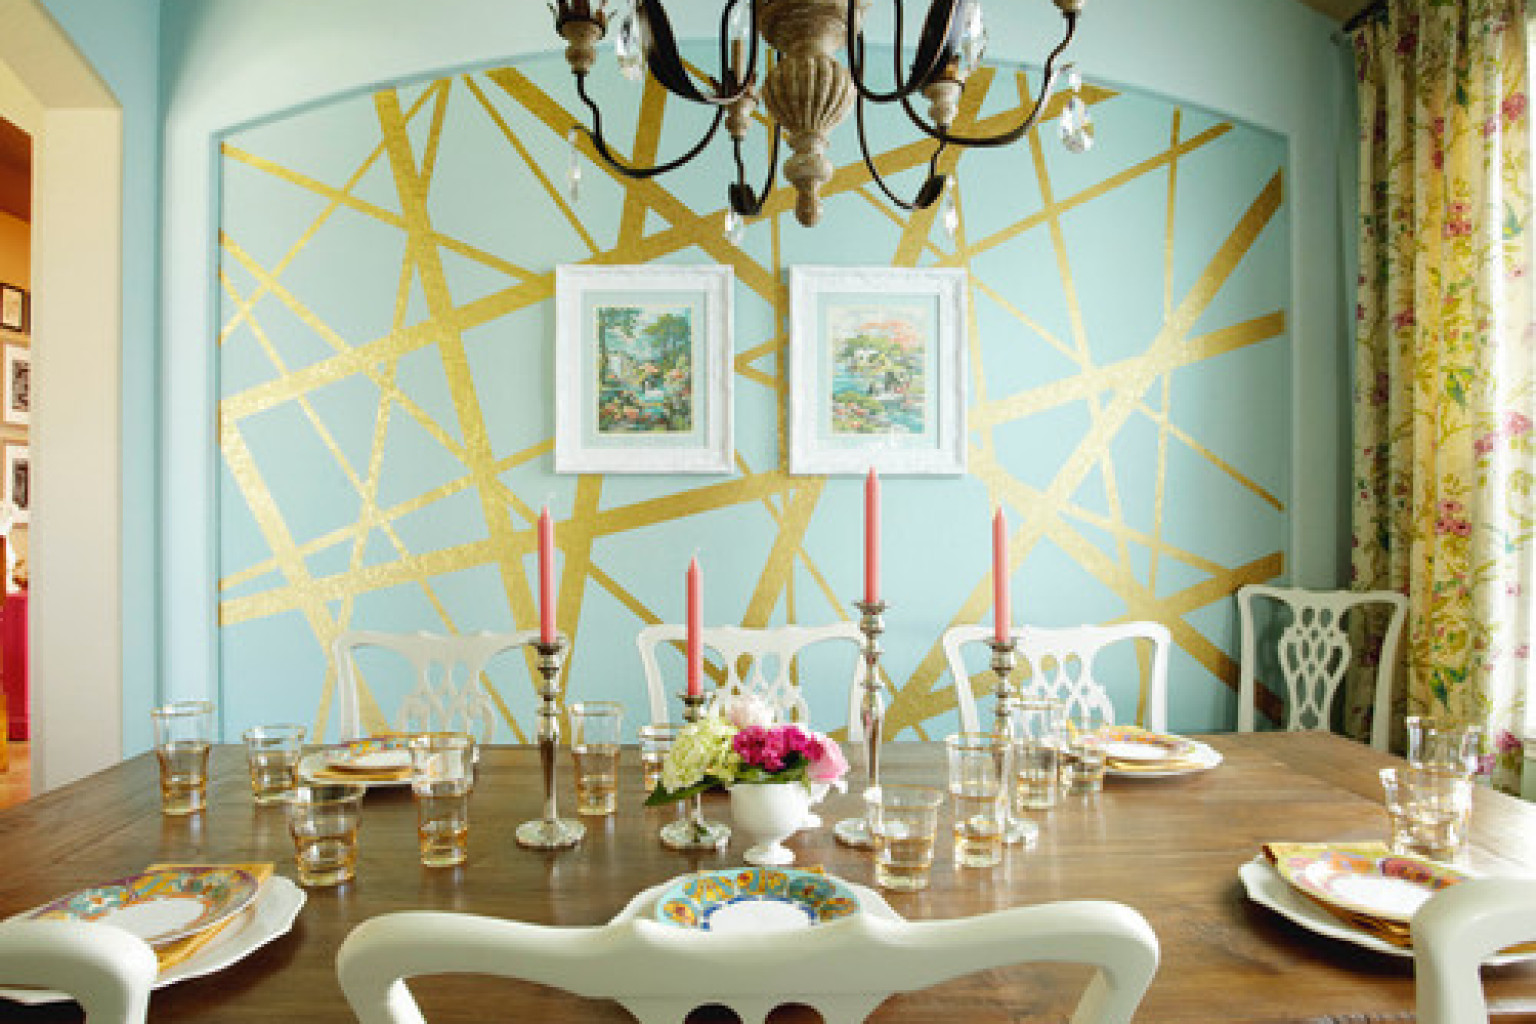 8 incredible interior paint ideas from real homes that for Images of interior painted walls